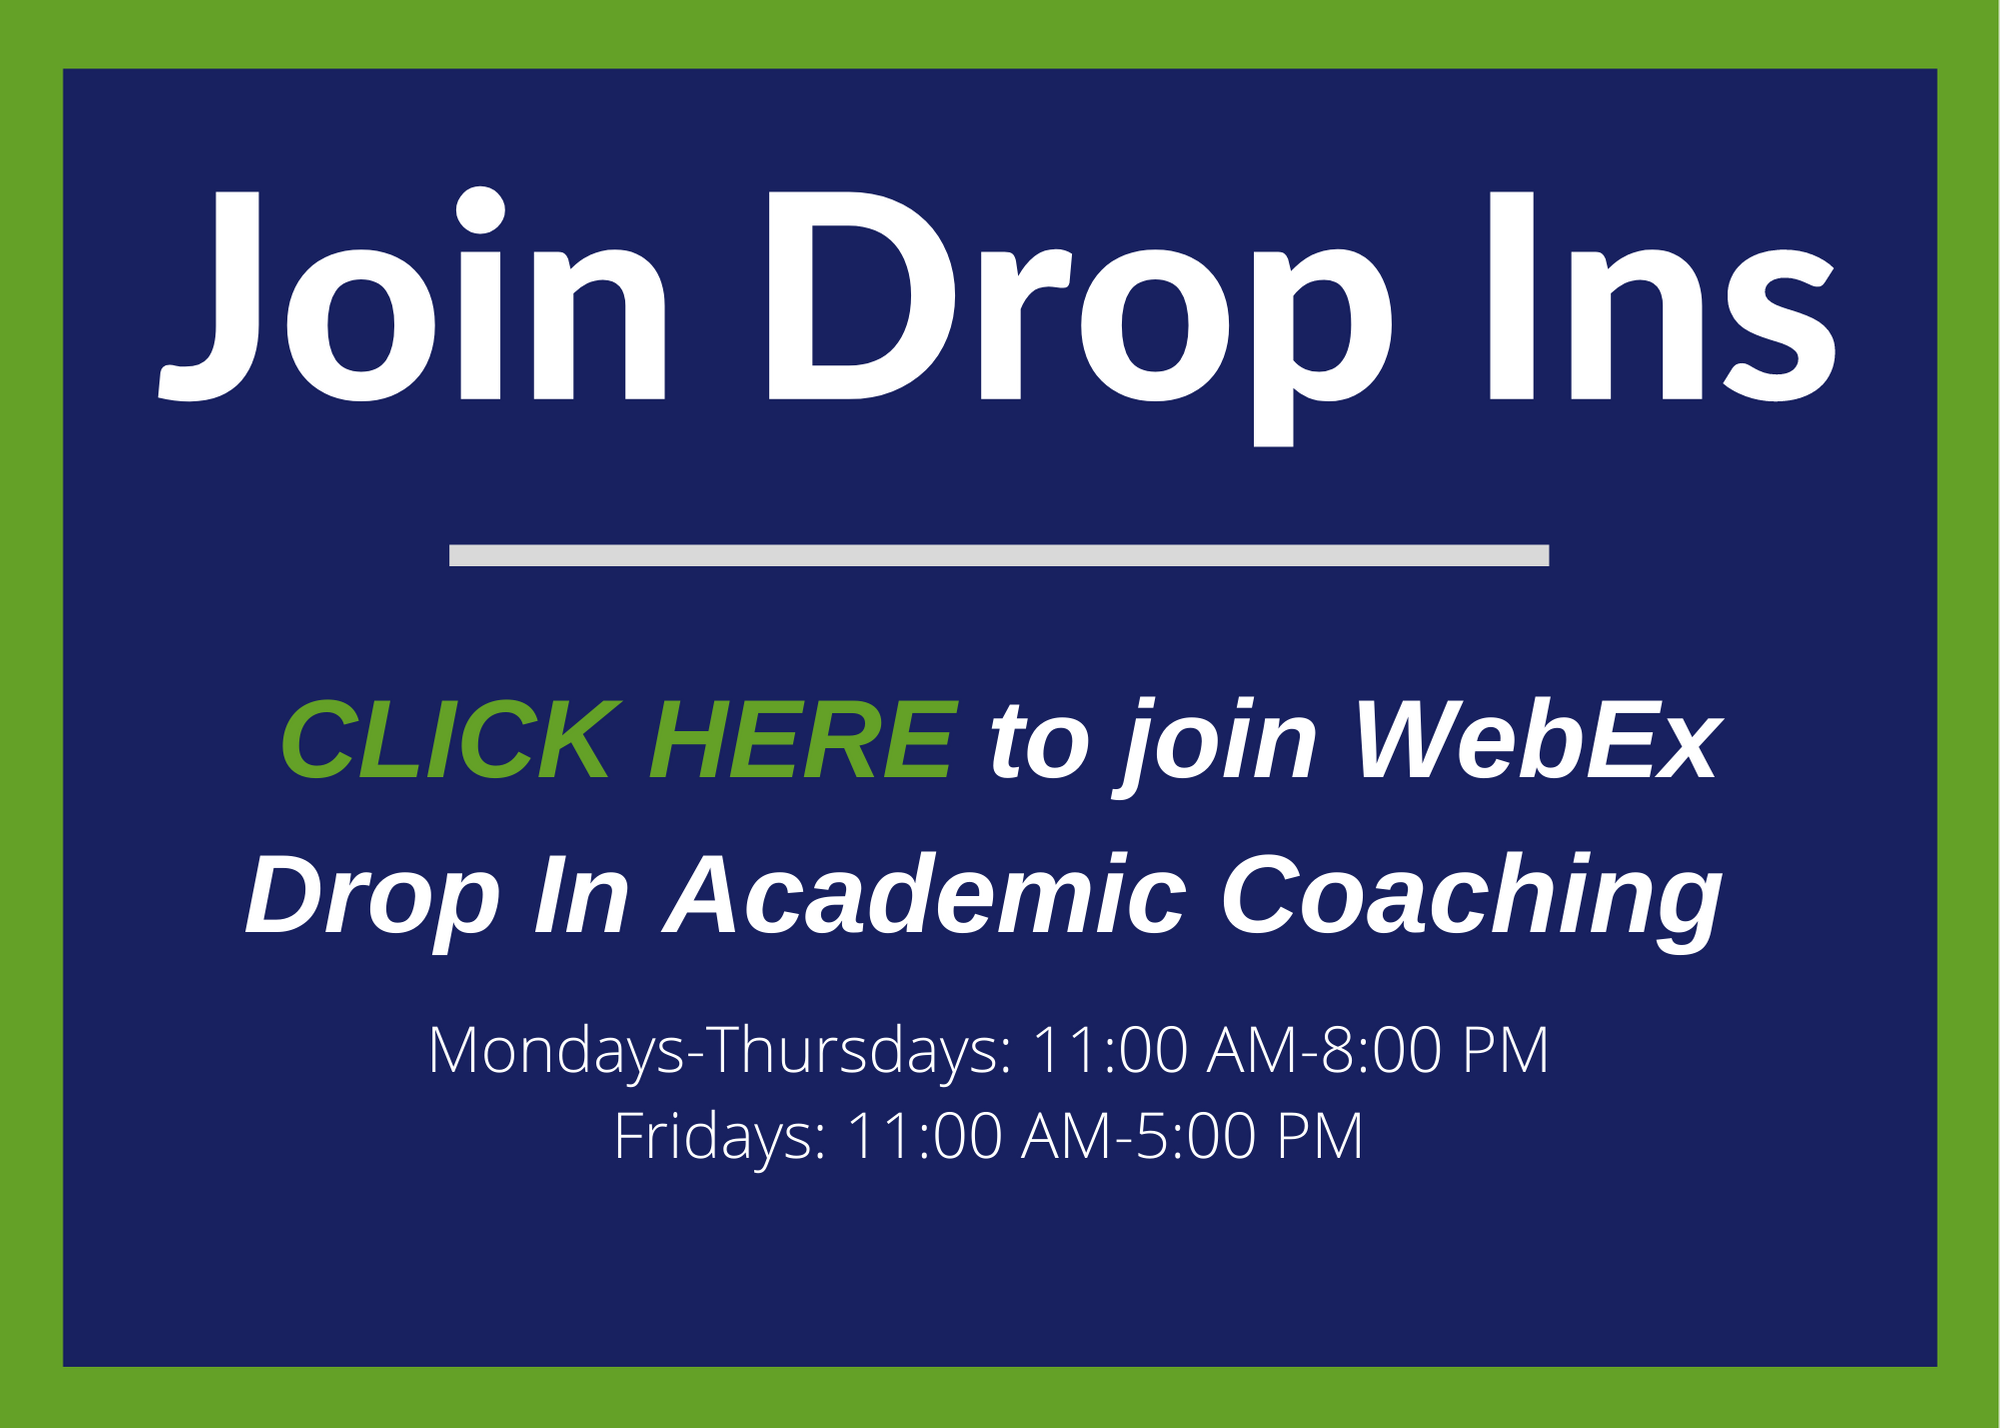 Join Drop In